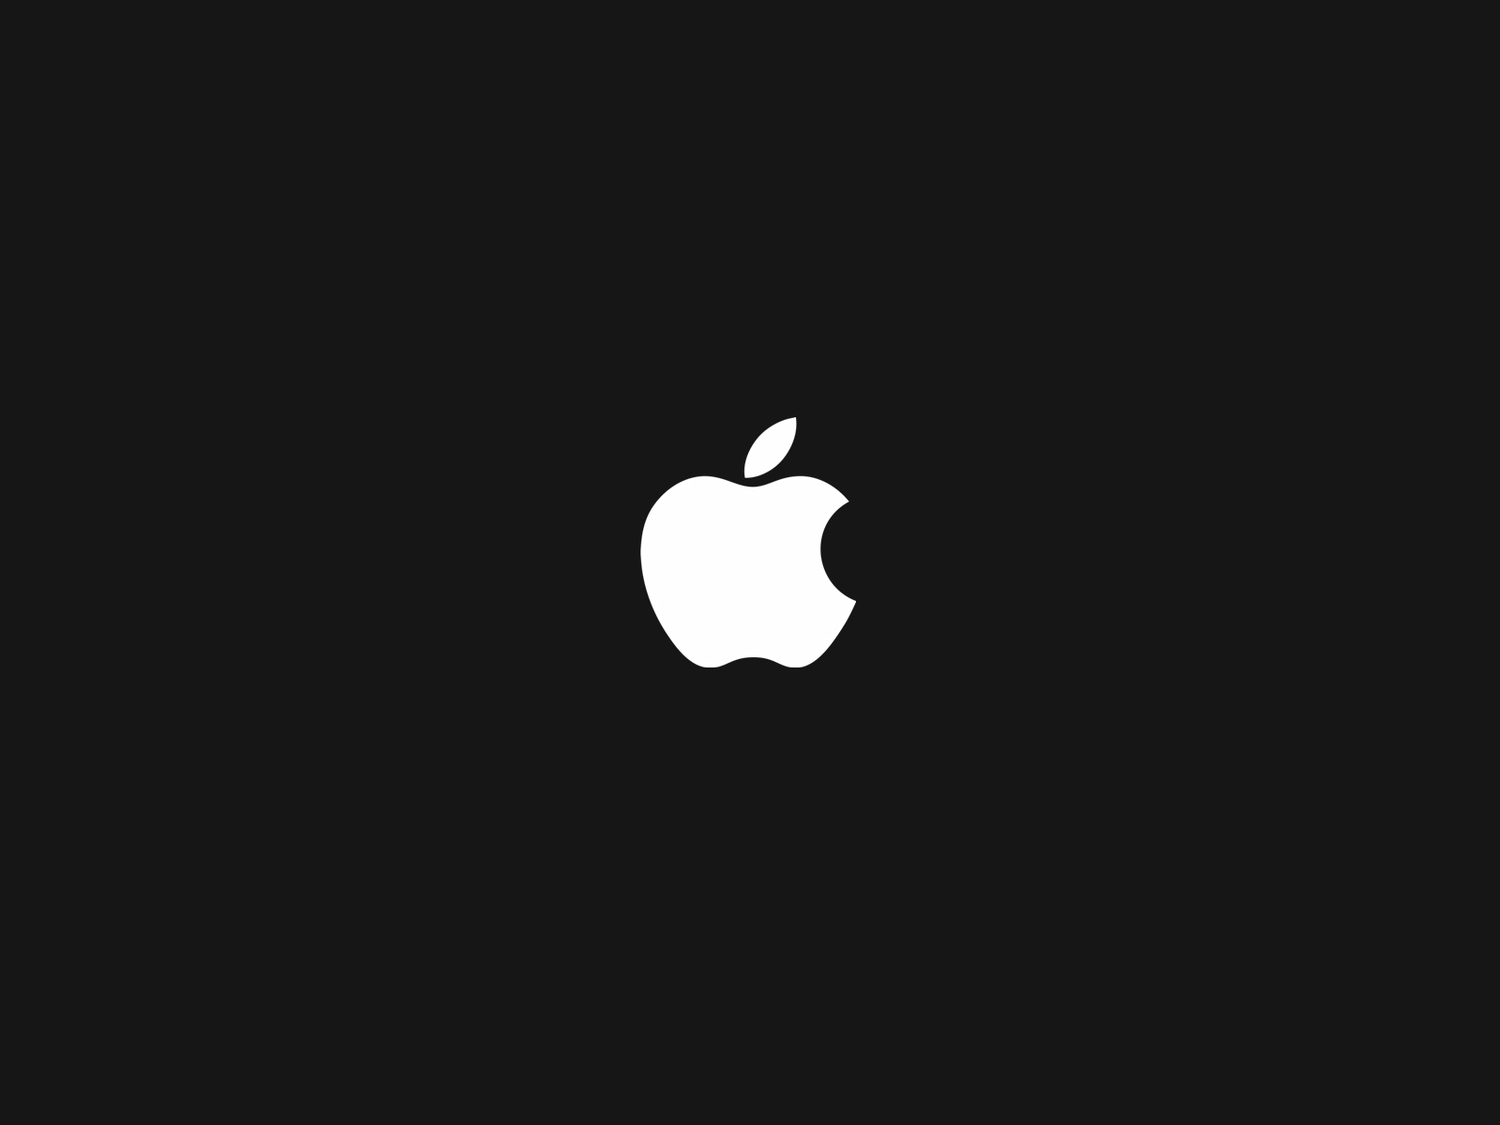 simple-apple-logo-background-normal.jpg